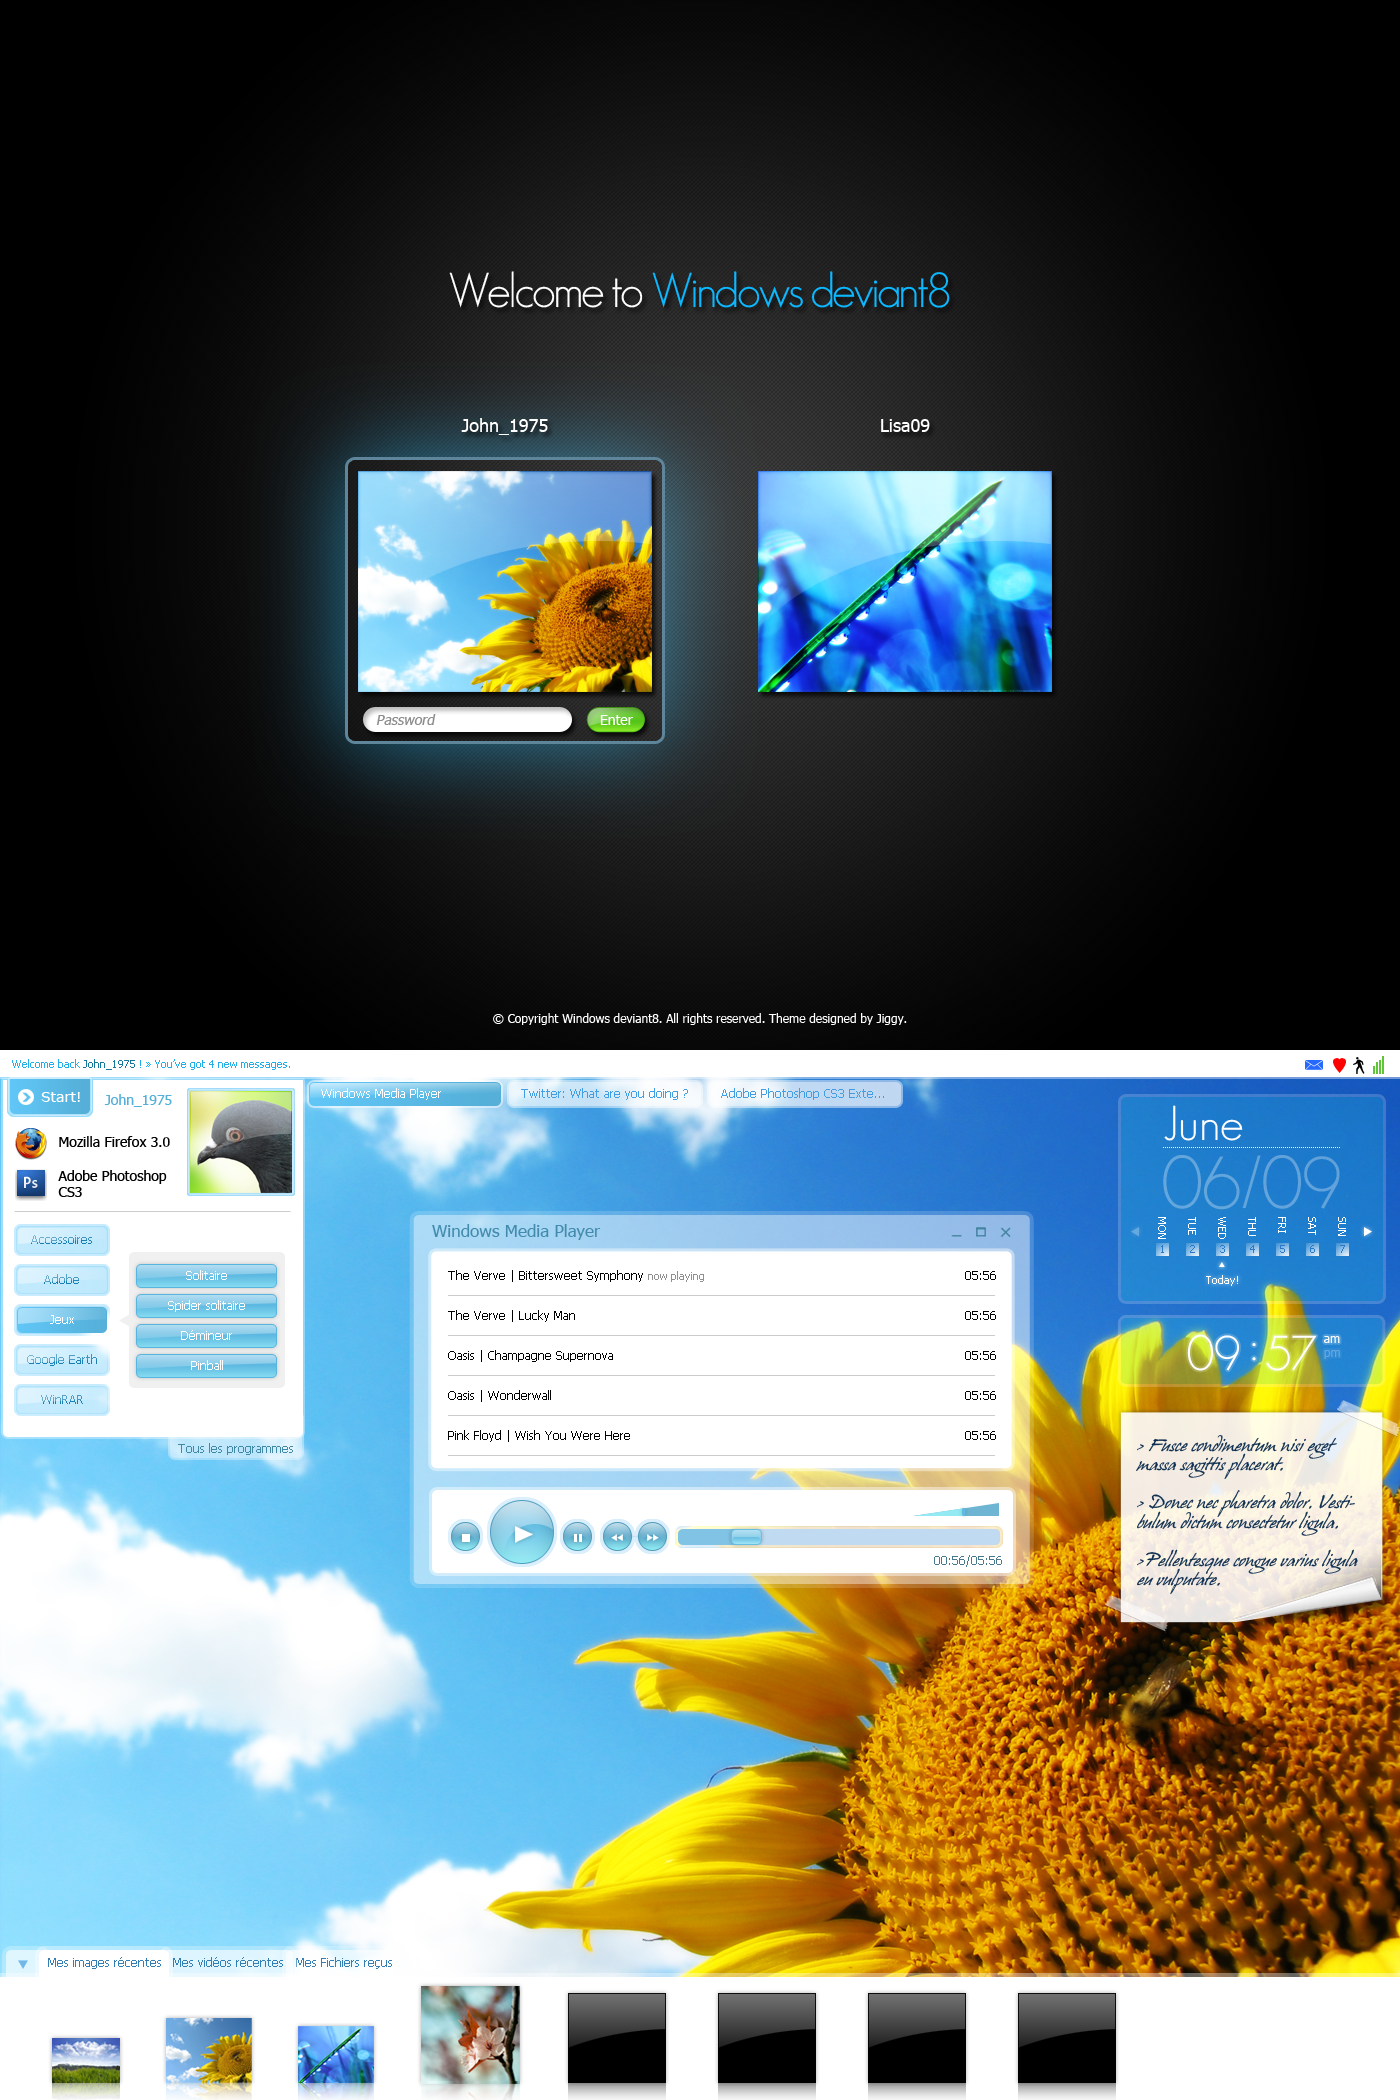 Windows deviant8 : Mockup by JiggyDesign